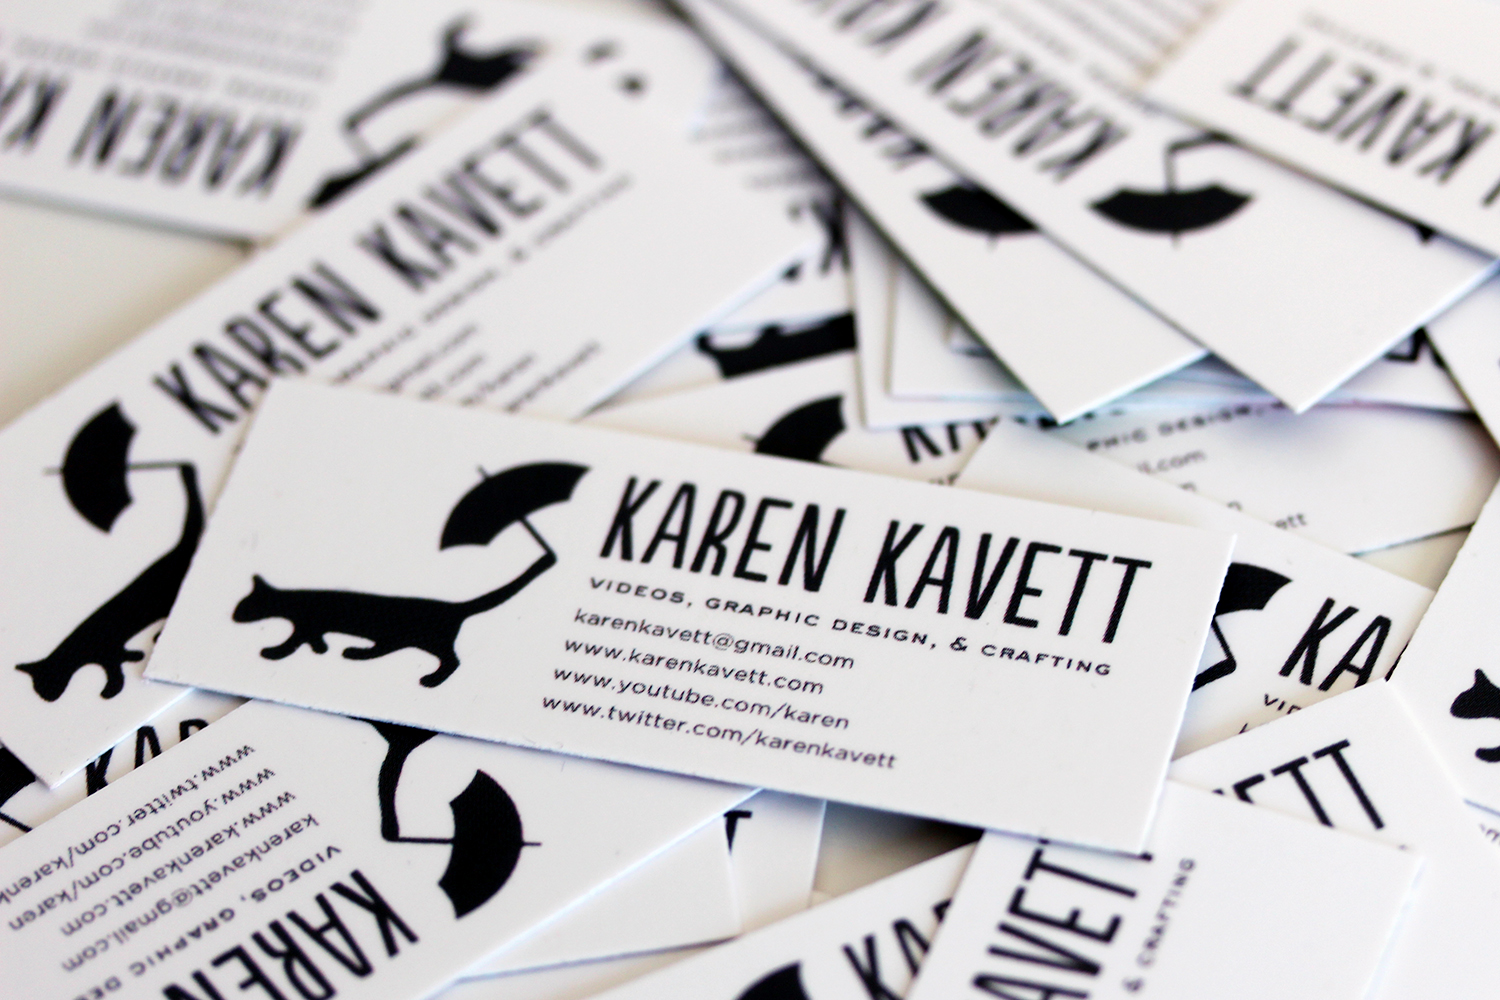 New Business Cards | Karen Kavett